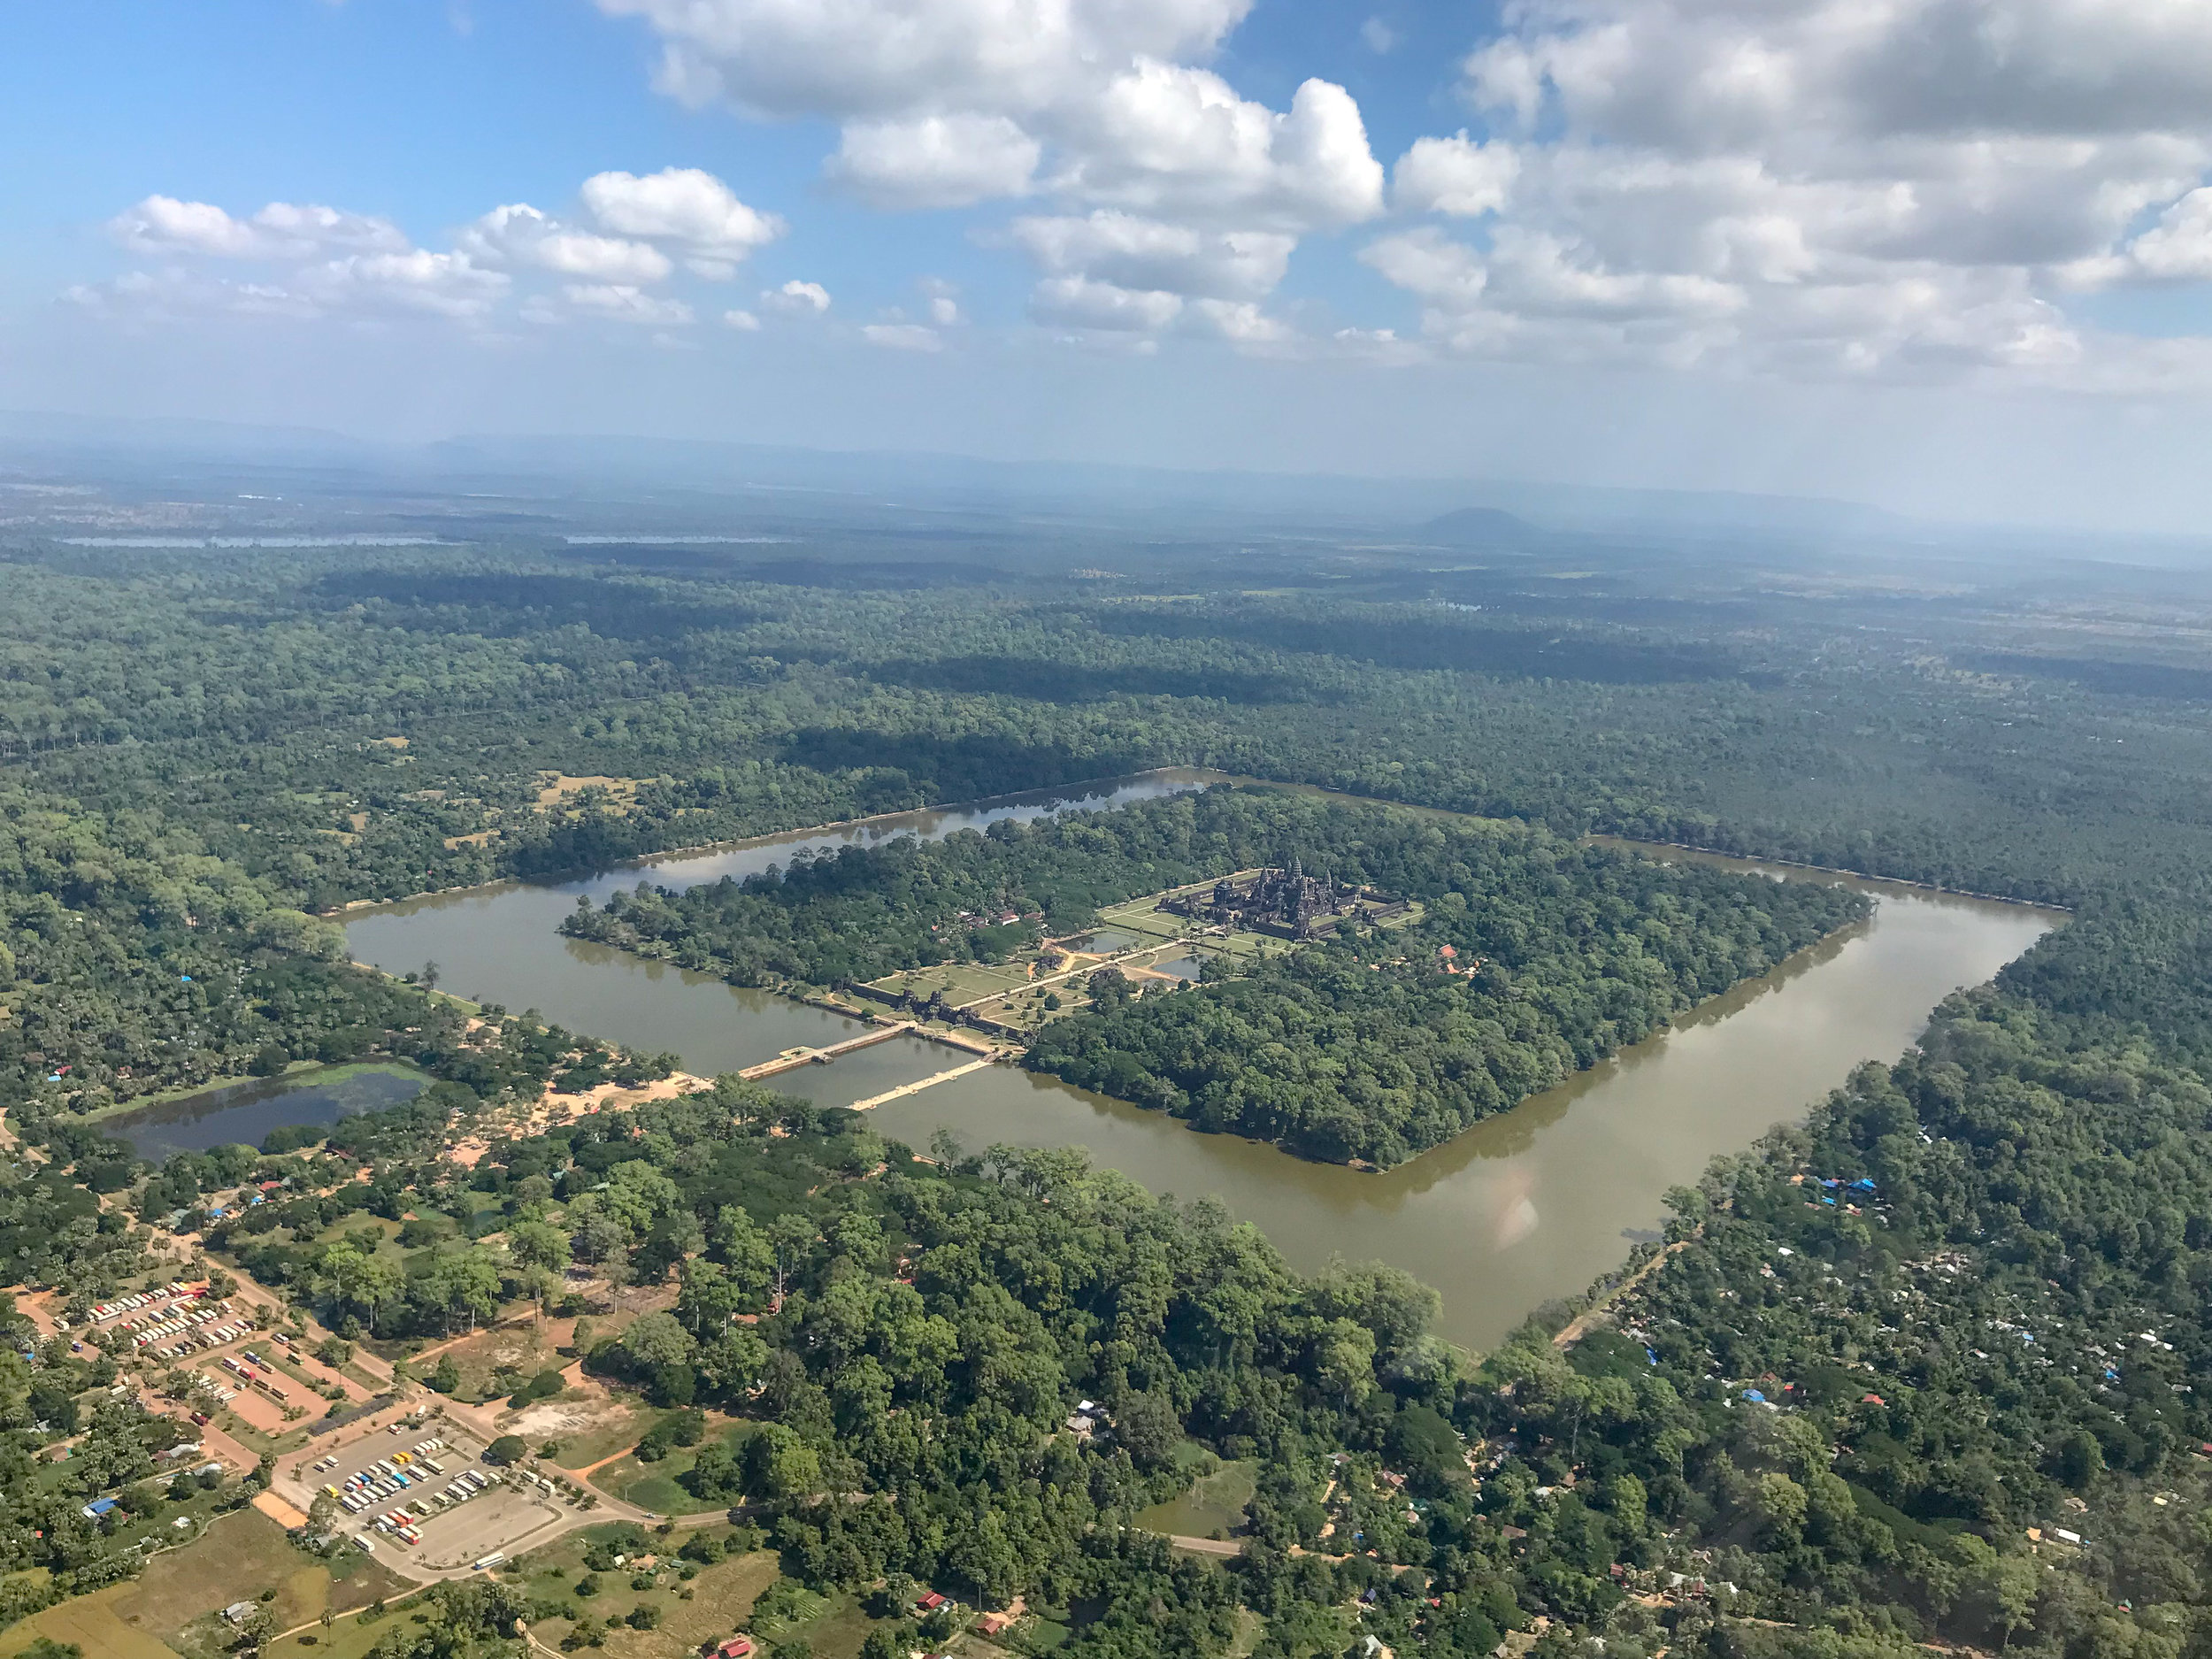 Angkor Wat from helicopter, Siem Reap, Cambodia